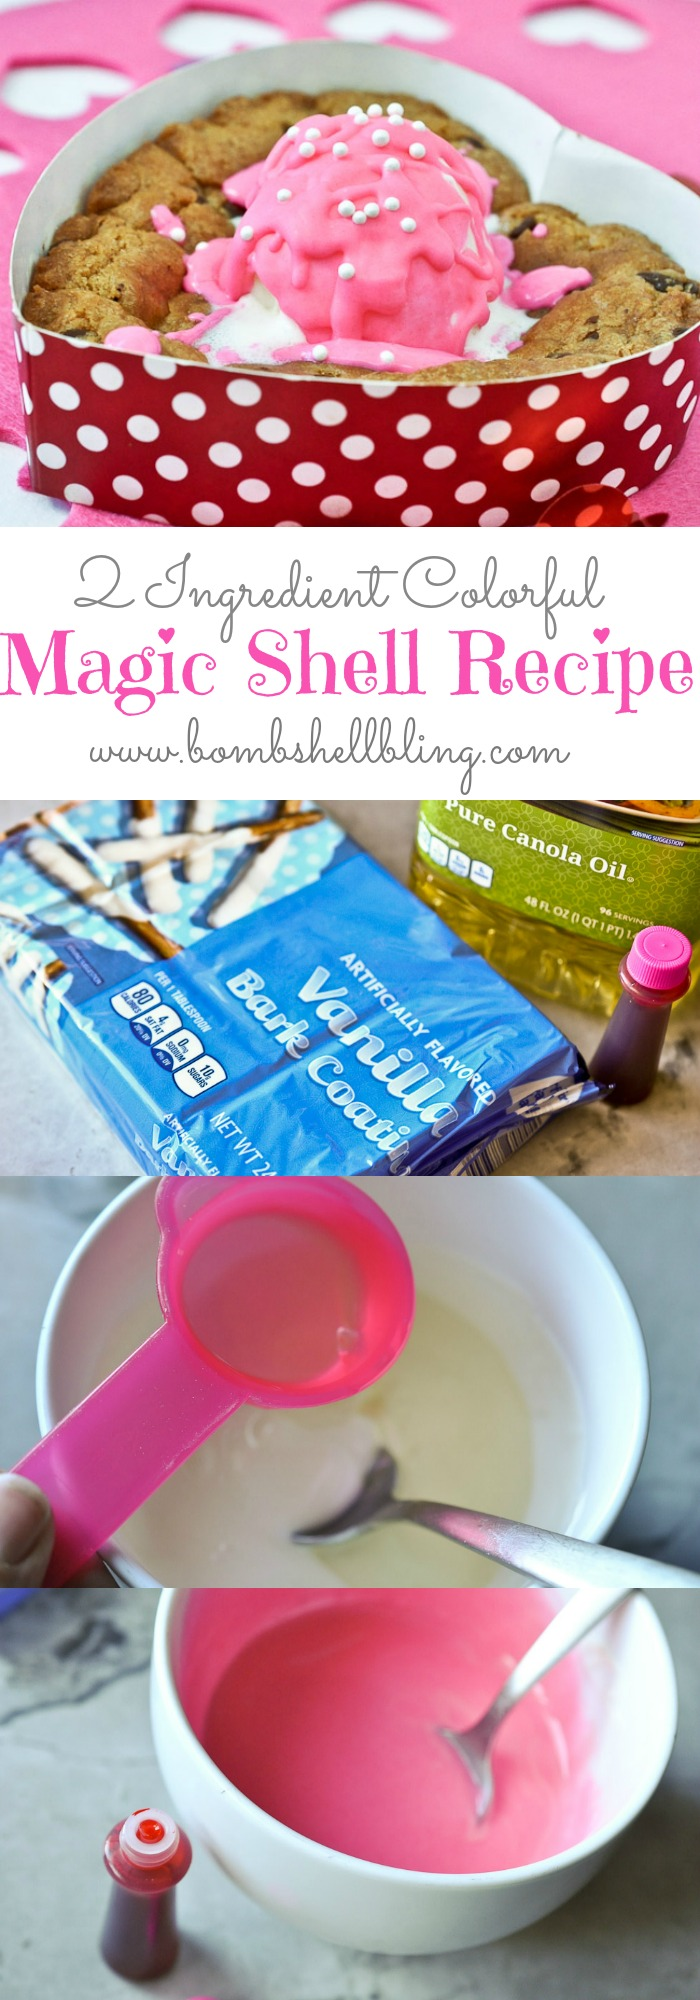 2 Ingredient Colorful Magic Shell Recipe